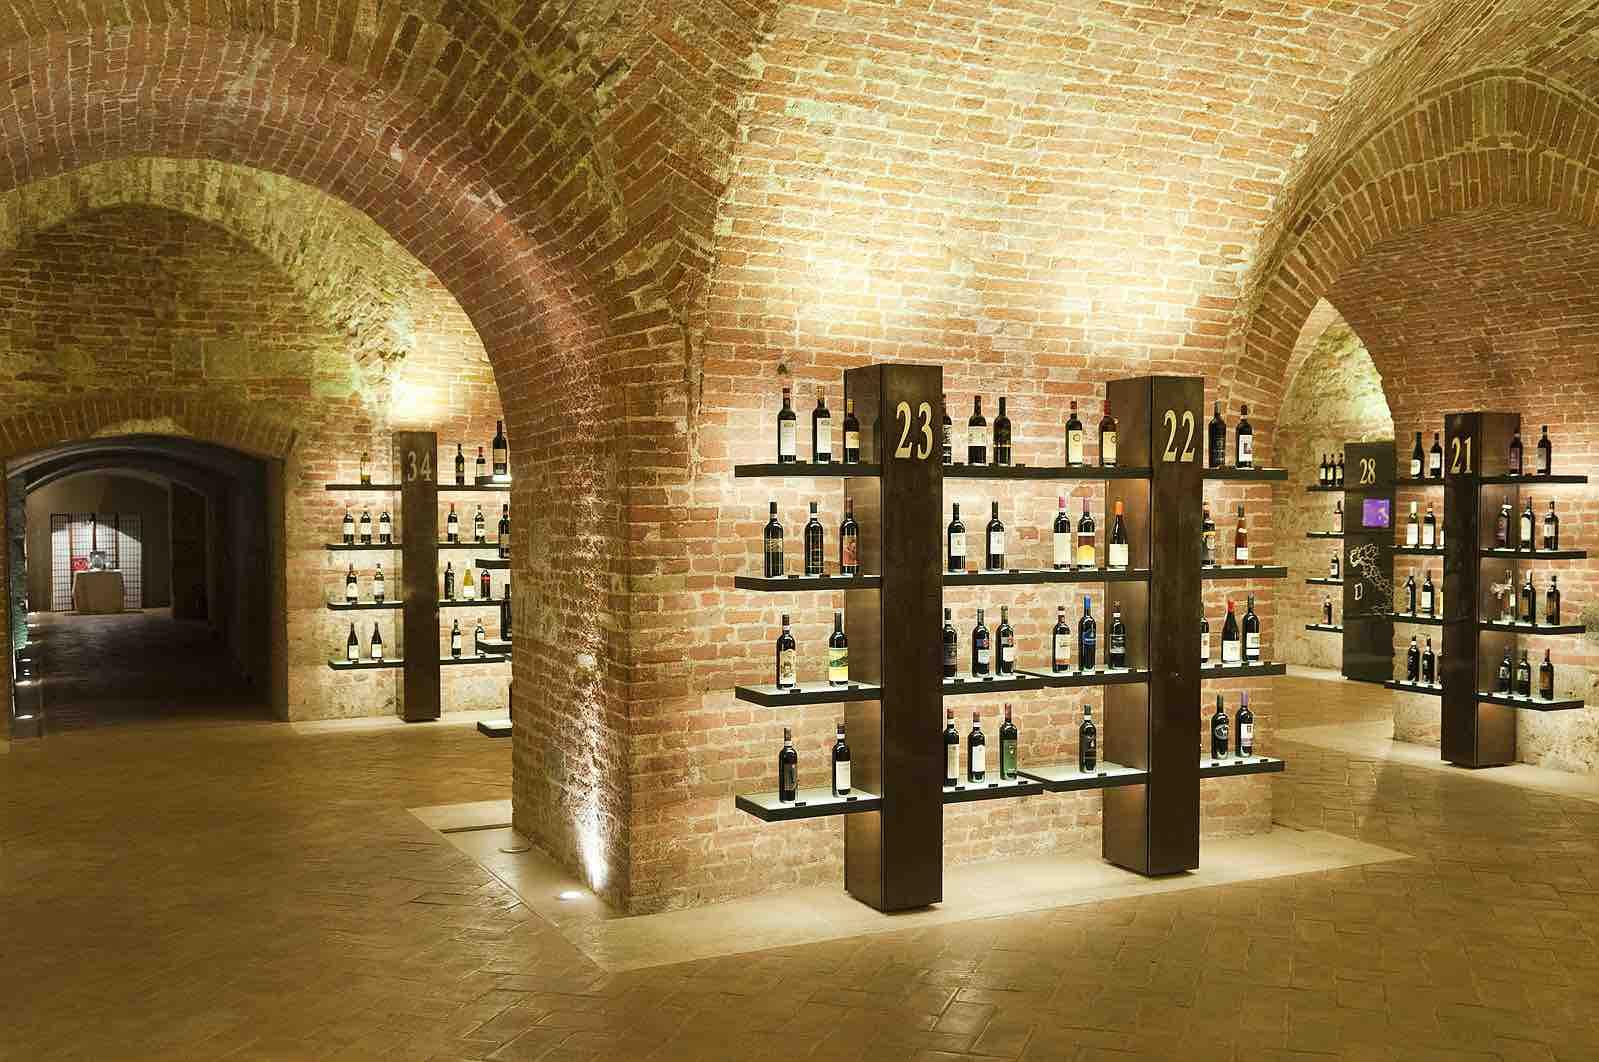 Top things to do in Tuscany include visiting Enoteca Italiana to sample their wines in these cellars